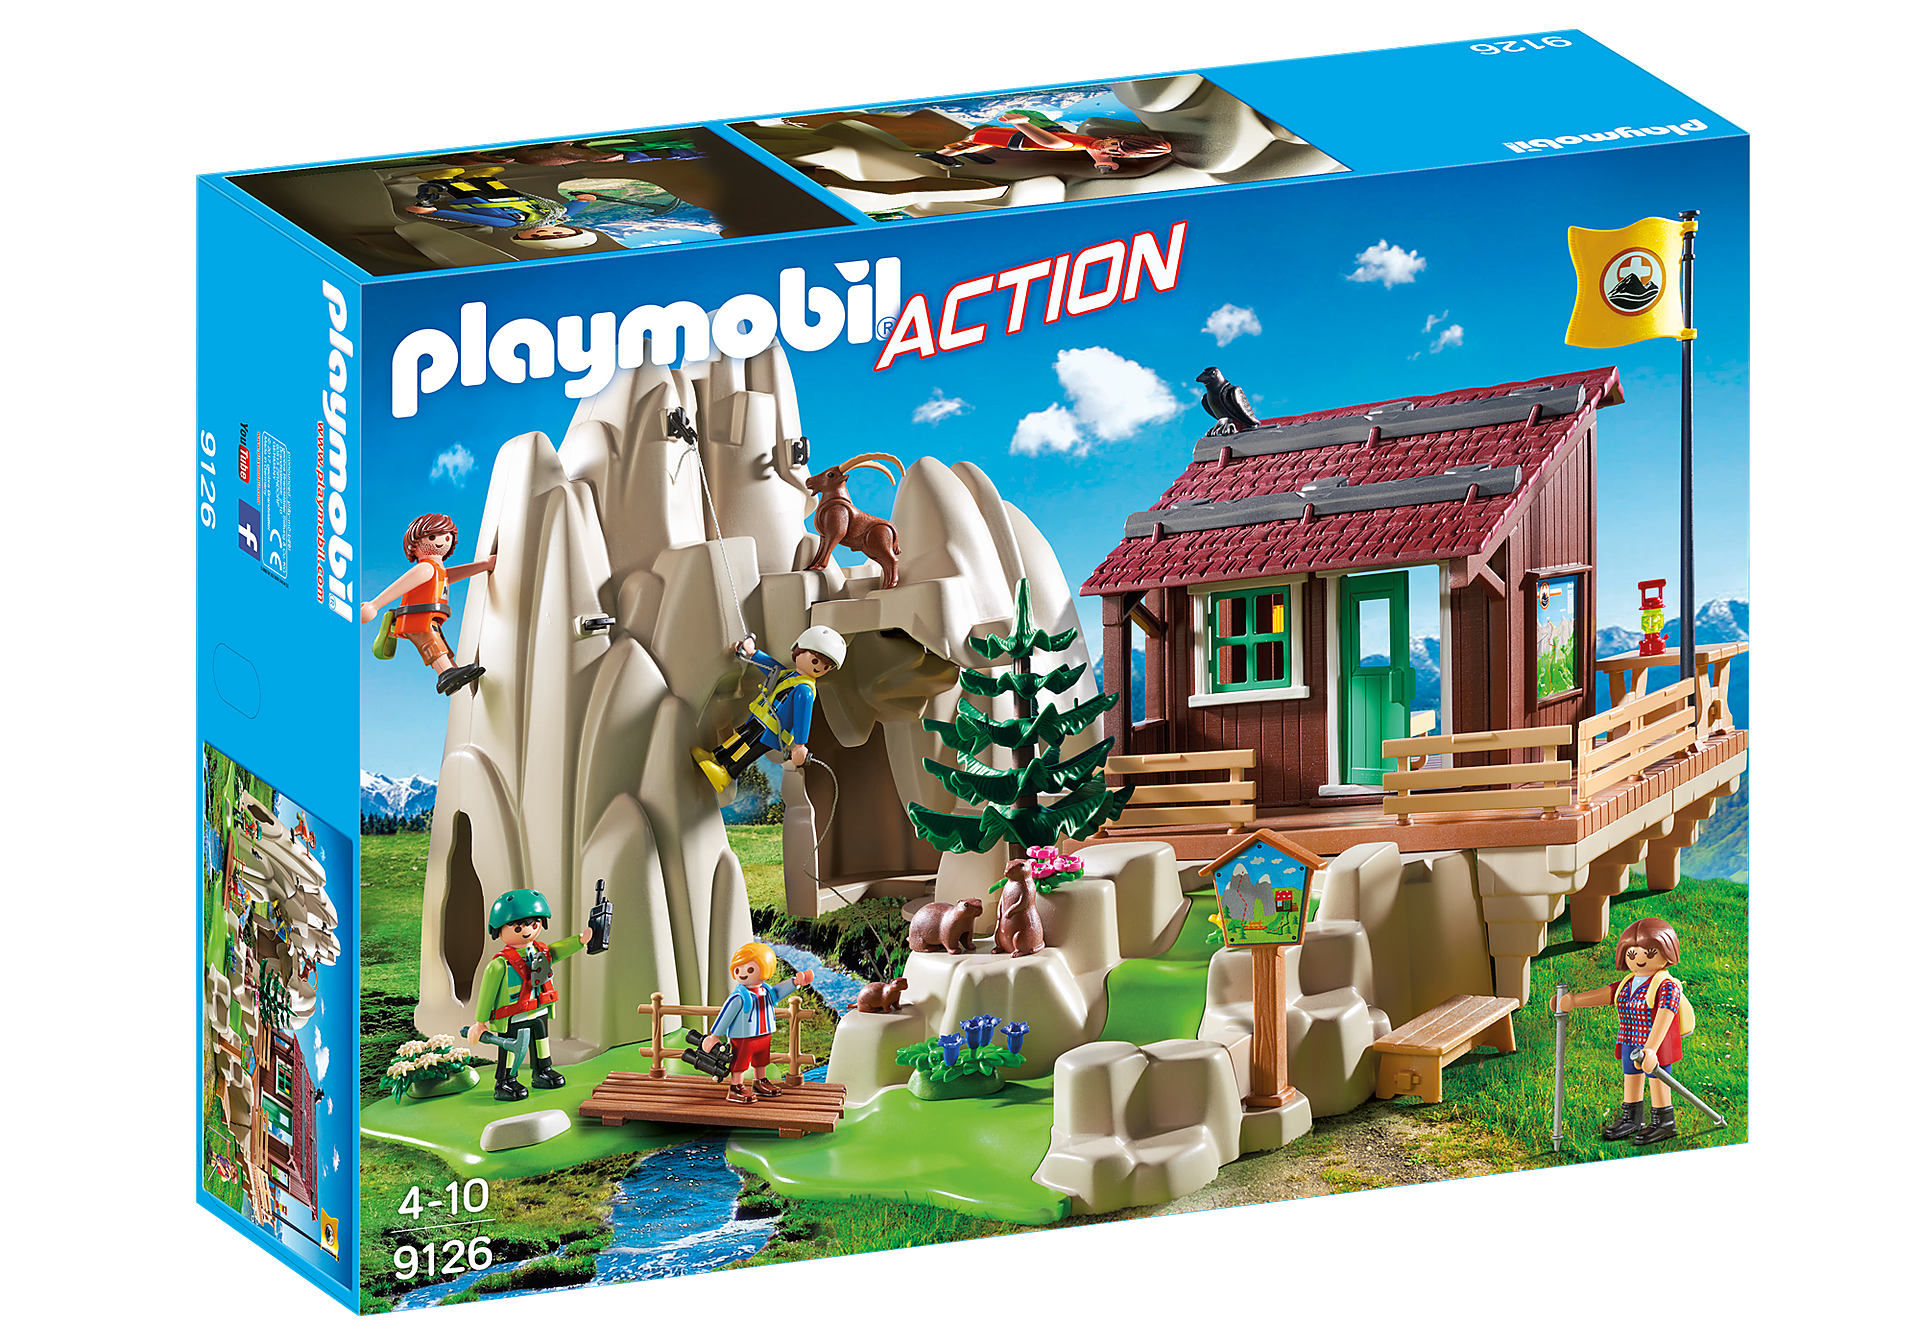 http://media.playmobil.com/i/playmobil/9126_product_box_front/Rock Climbers with Cabin